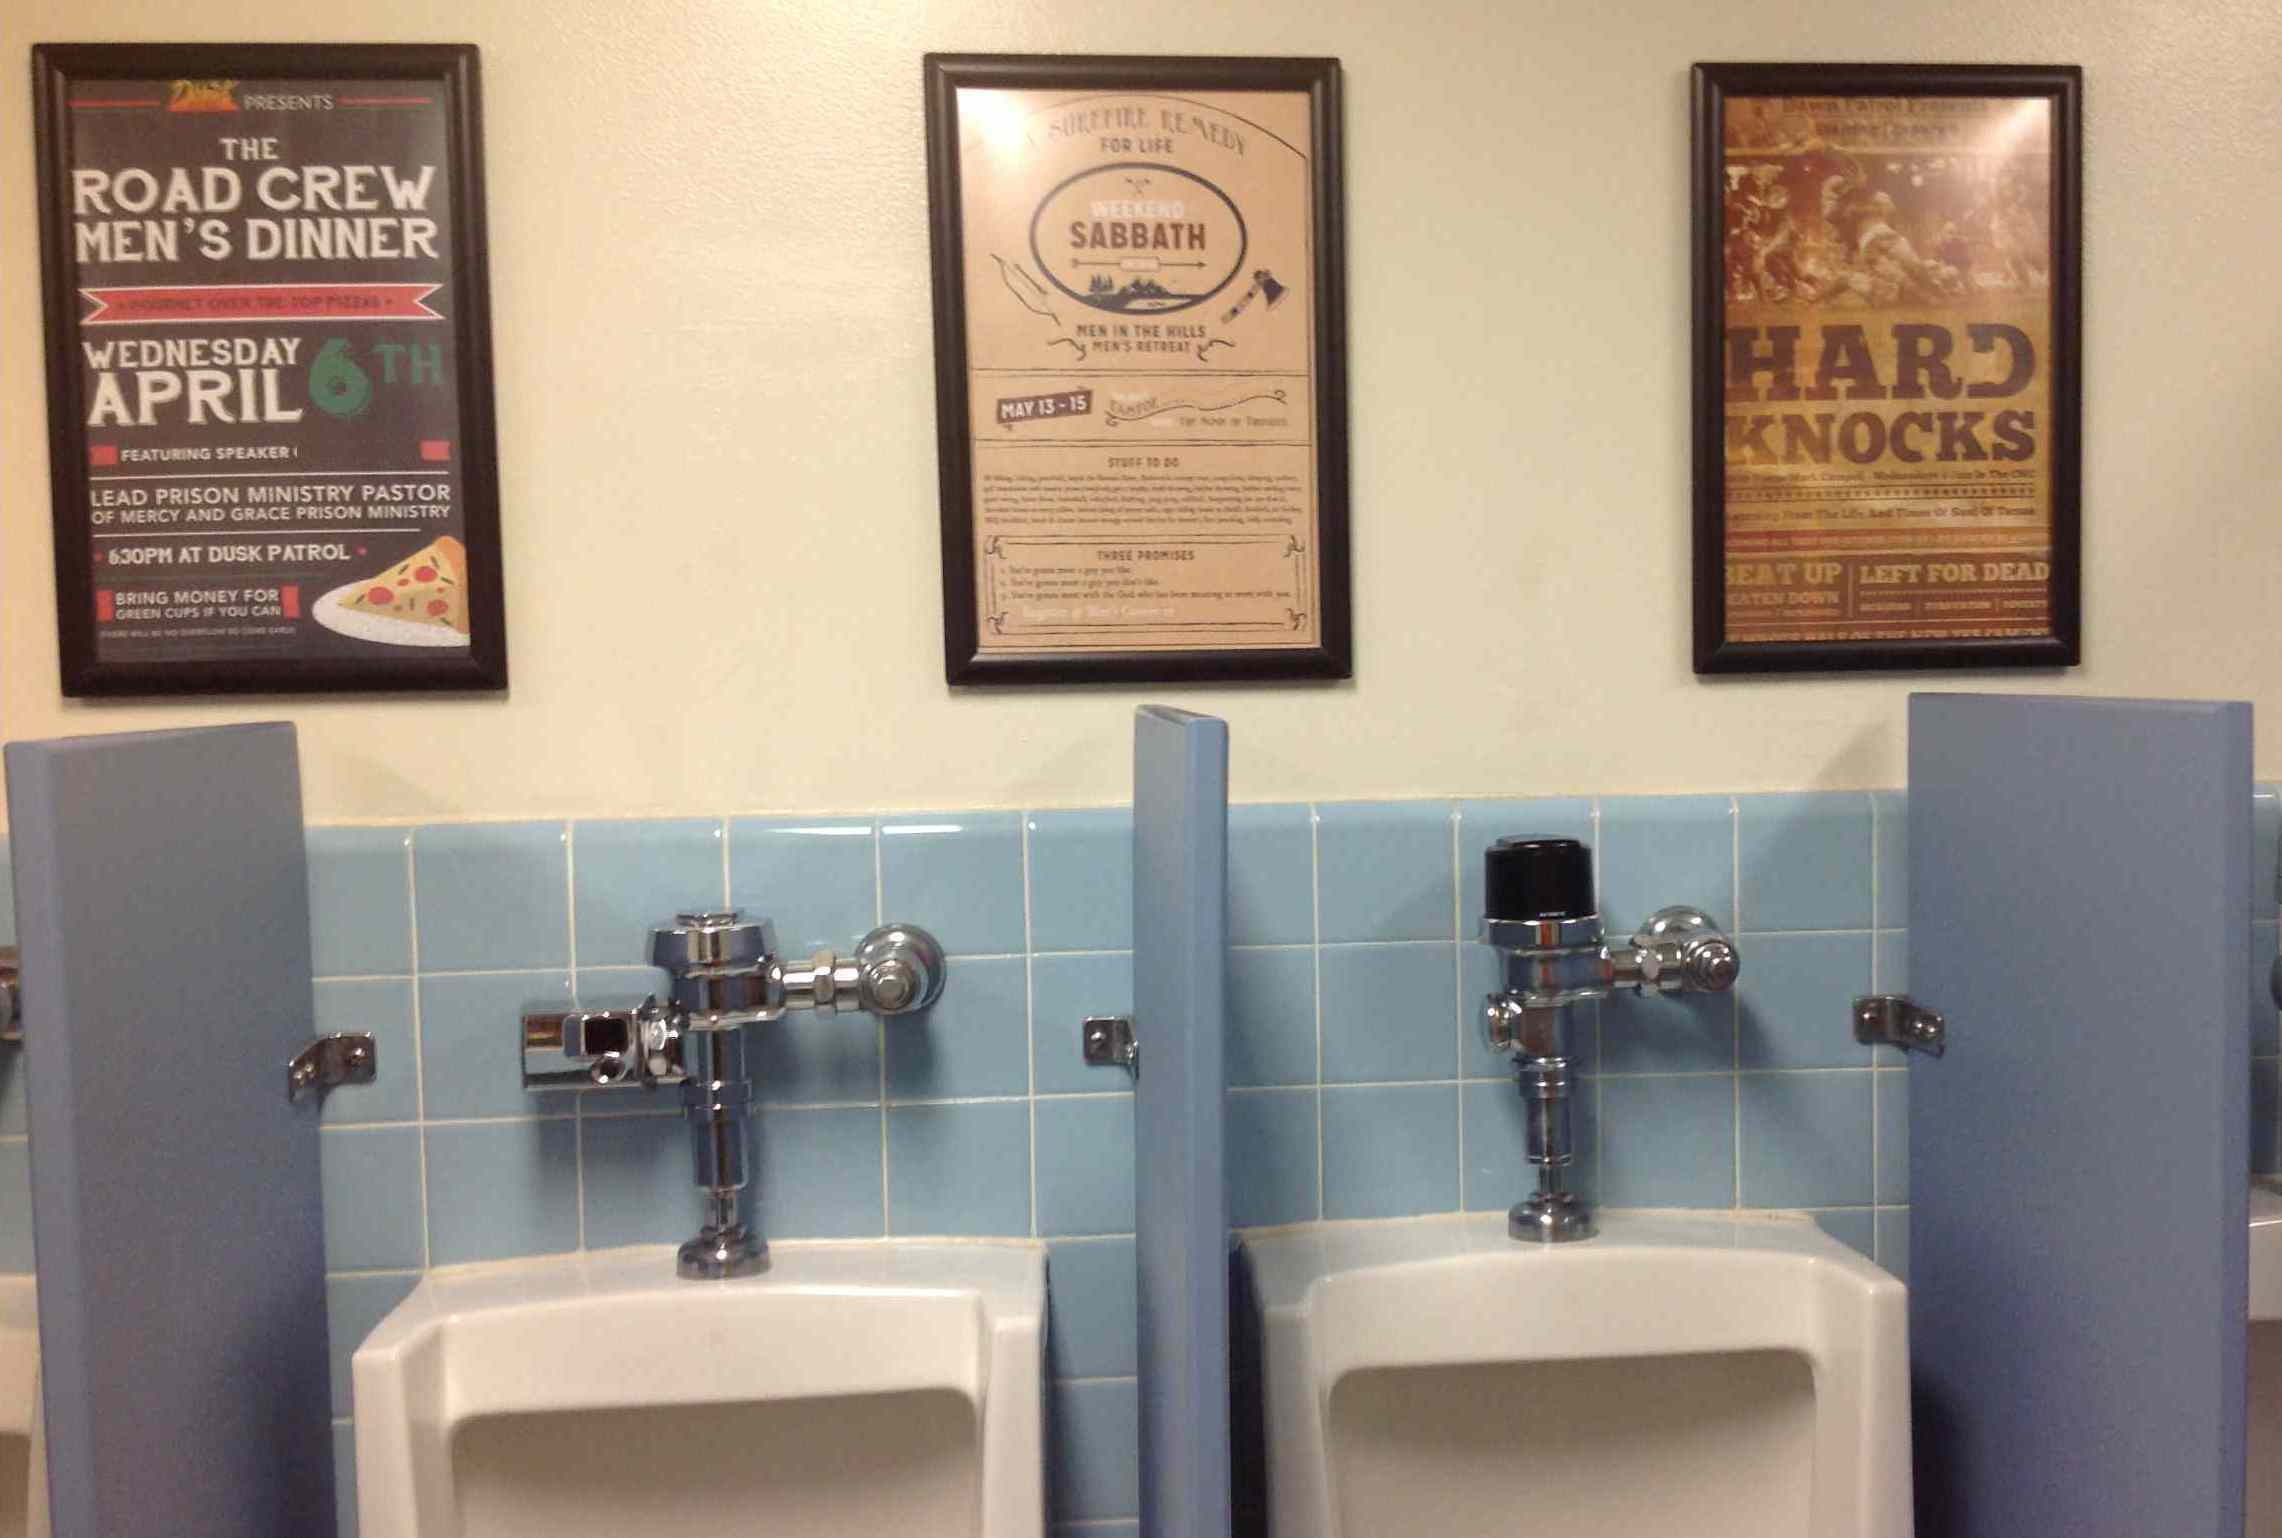 Men's Church Activity Posters On Restroom Wall